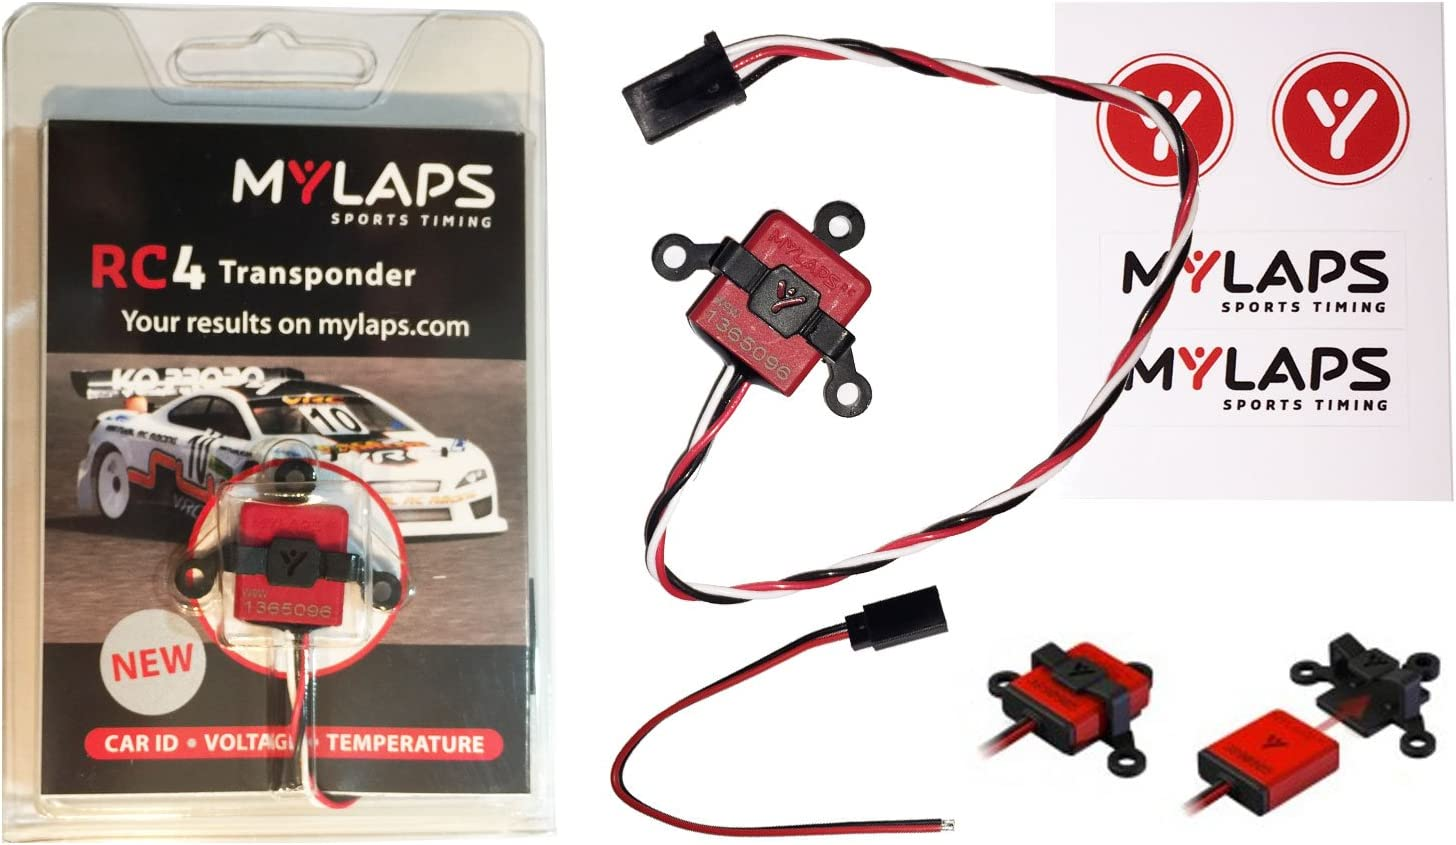 MyLaps RC4 3-wire Transponder for R C Cars AMBrc, AMB rc – NEW